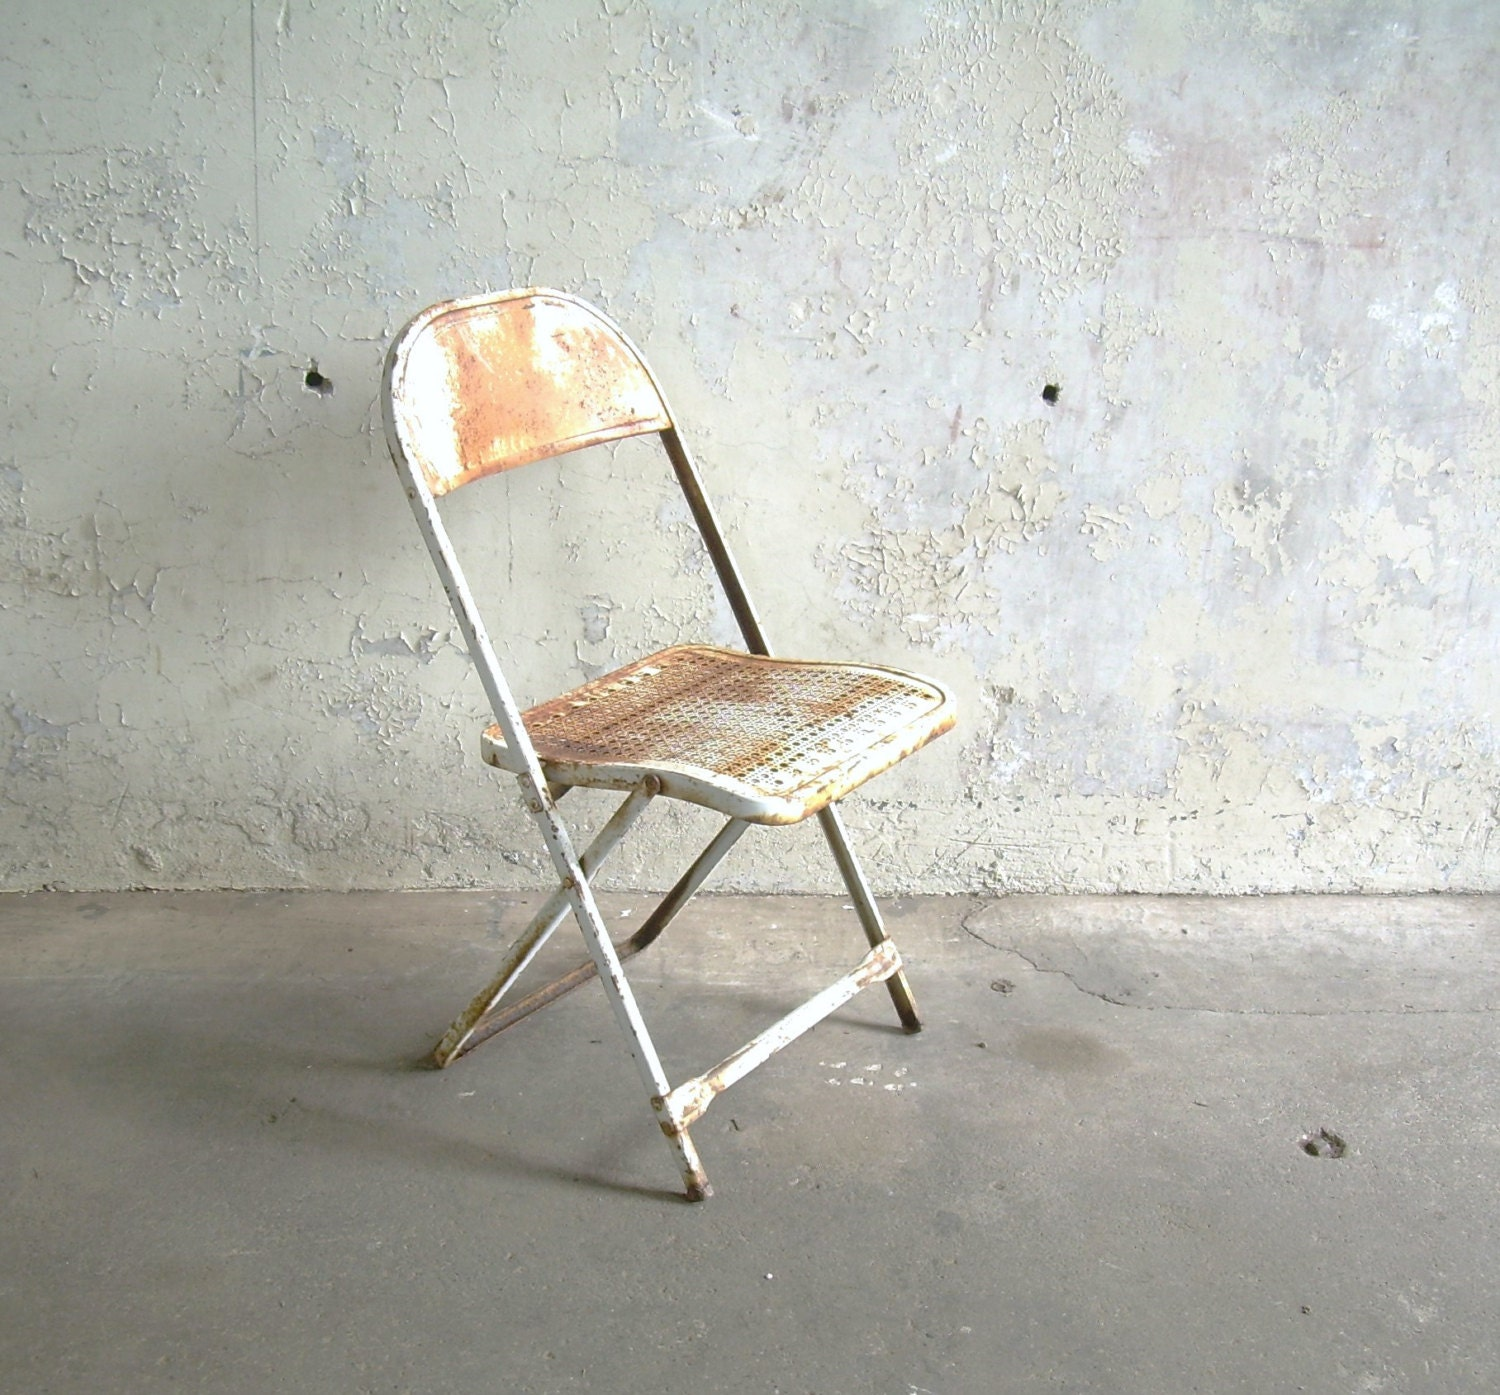 Vintage Metal Folding Chair White Rusty